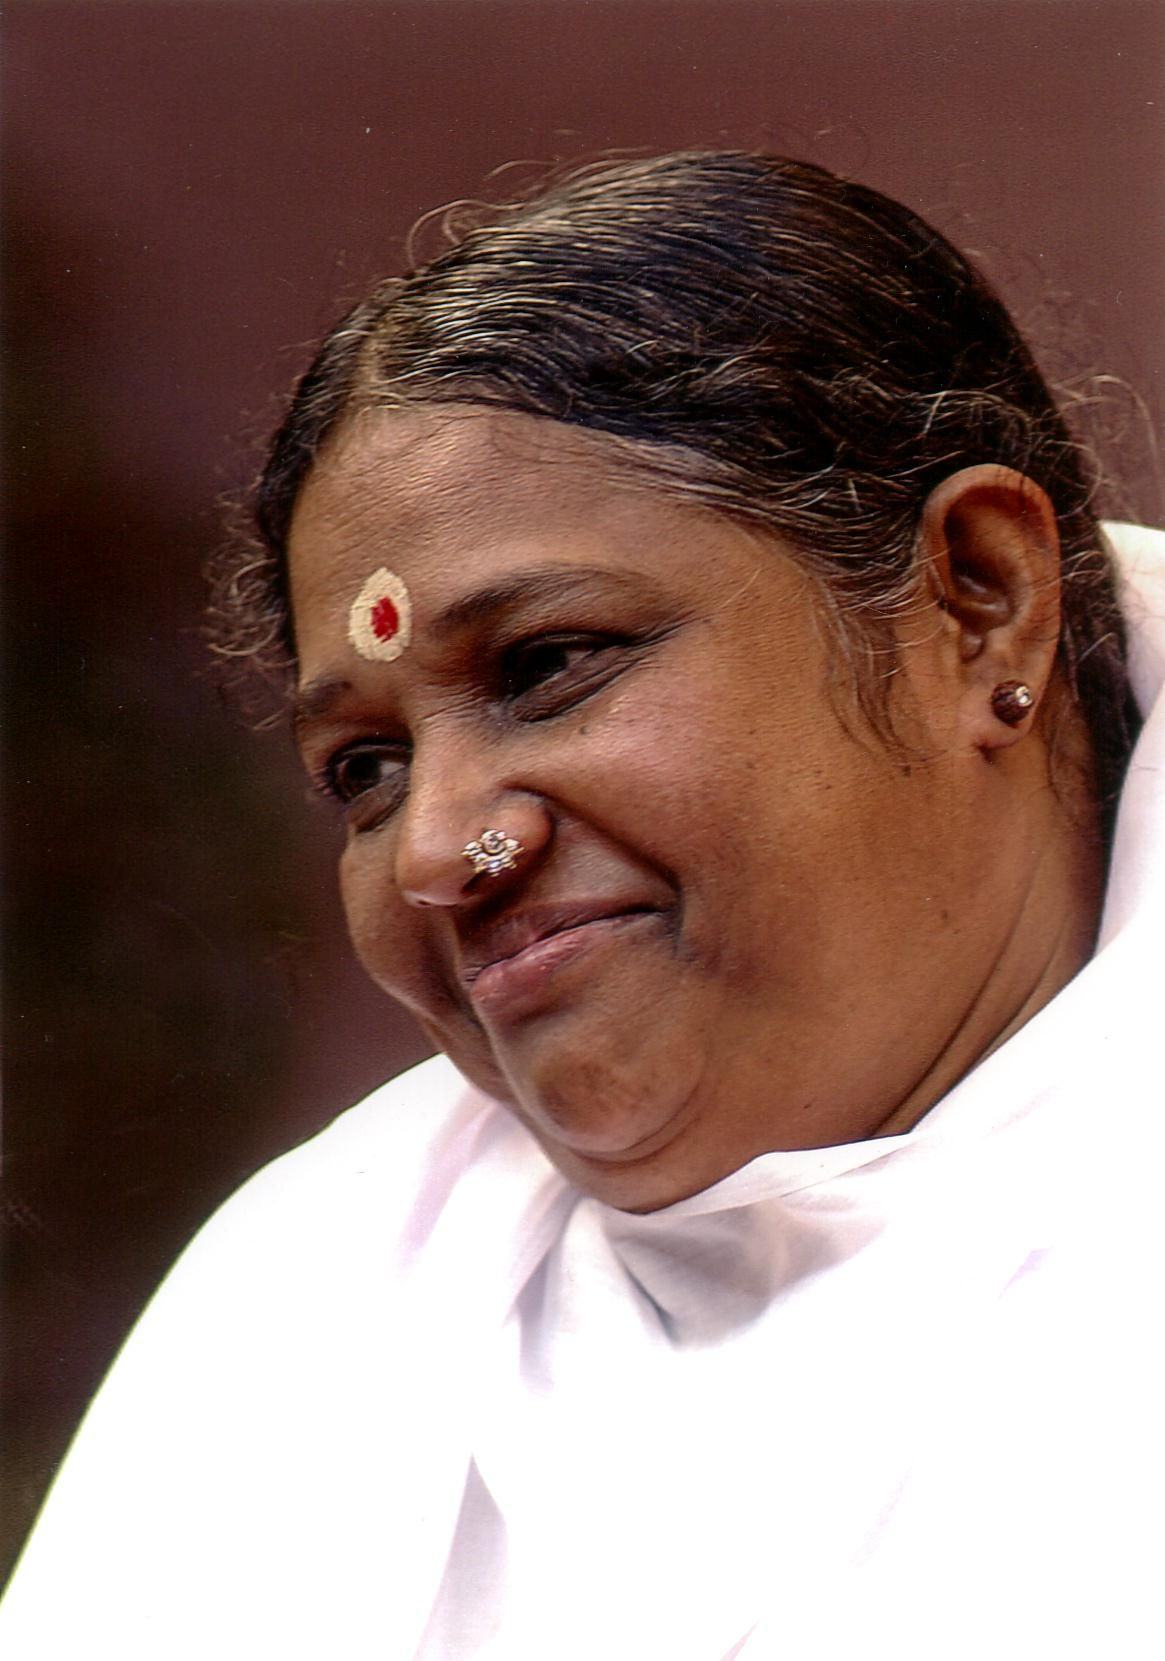 Look At This Radiant Face The Compassion In Her Eyes Amma Is The Hugging Saint And Will Amaze You Amma Org Avec Images Spiritualite Echangisme Spirituel